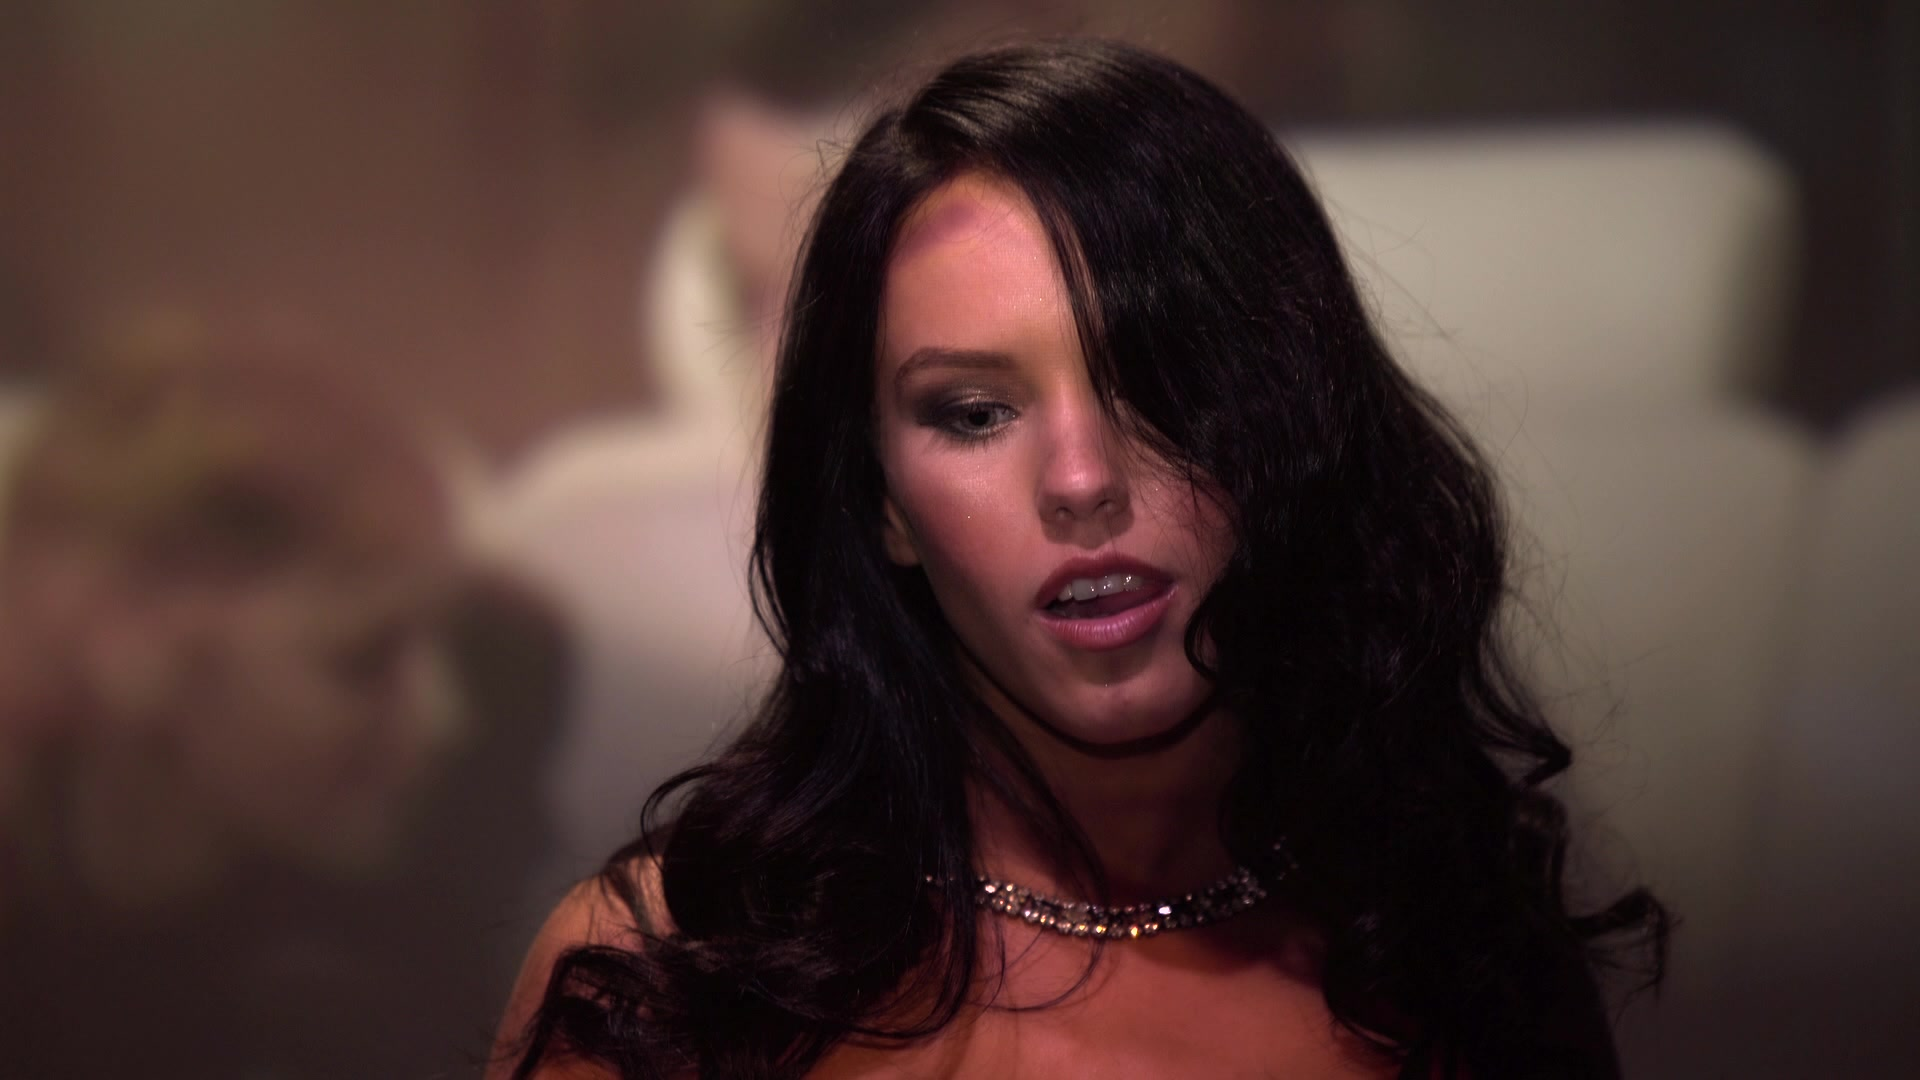 Scene with Megan Rain - image 2 out of 20